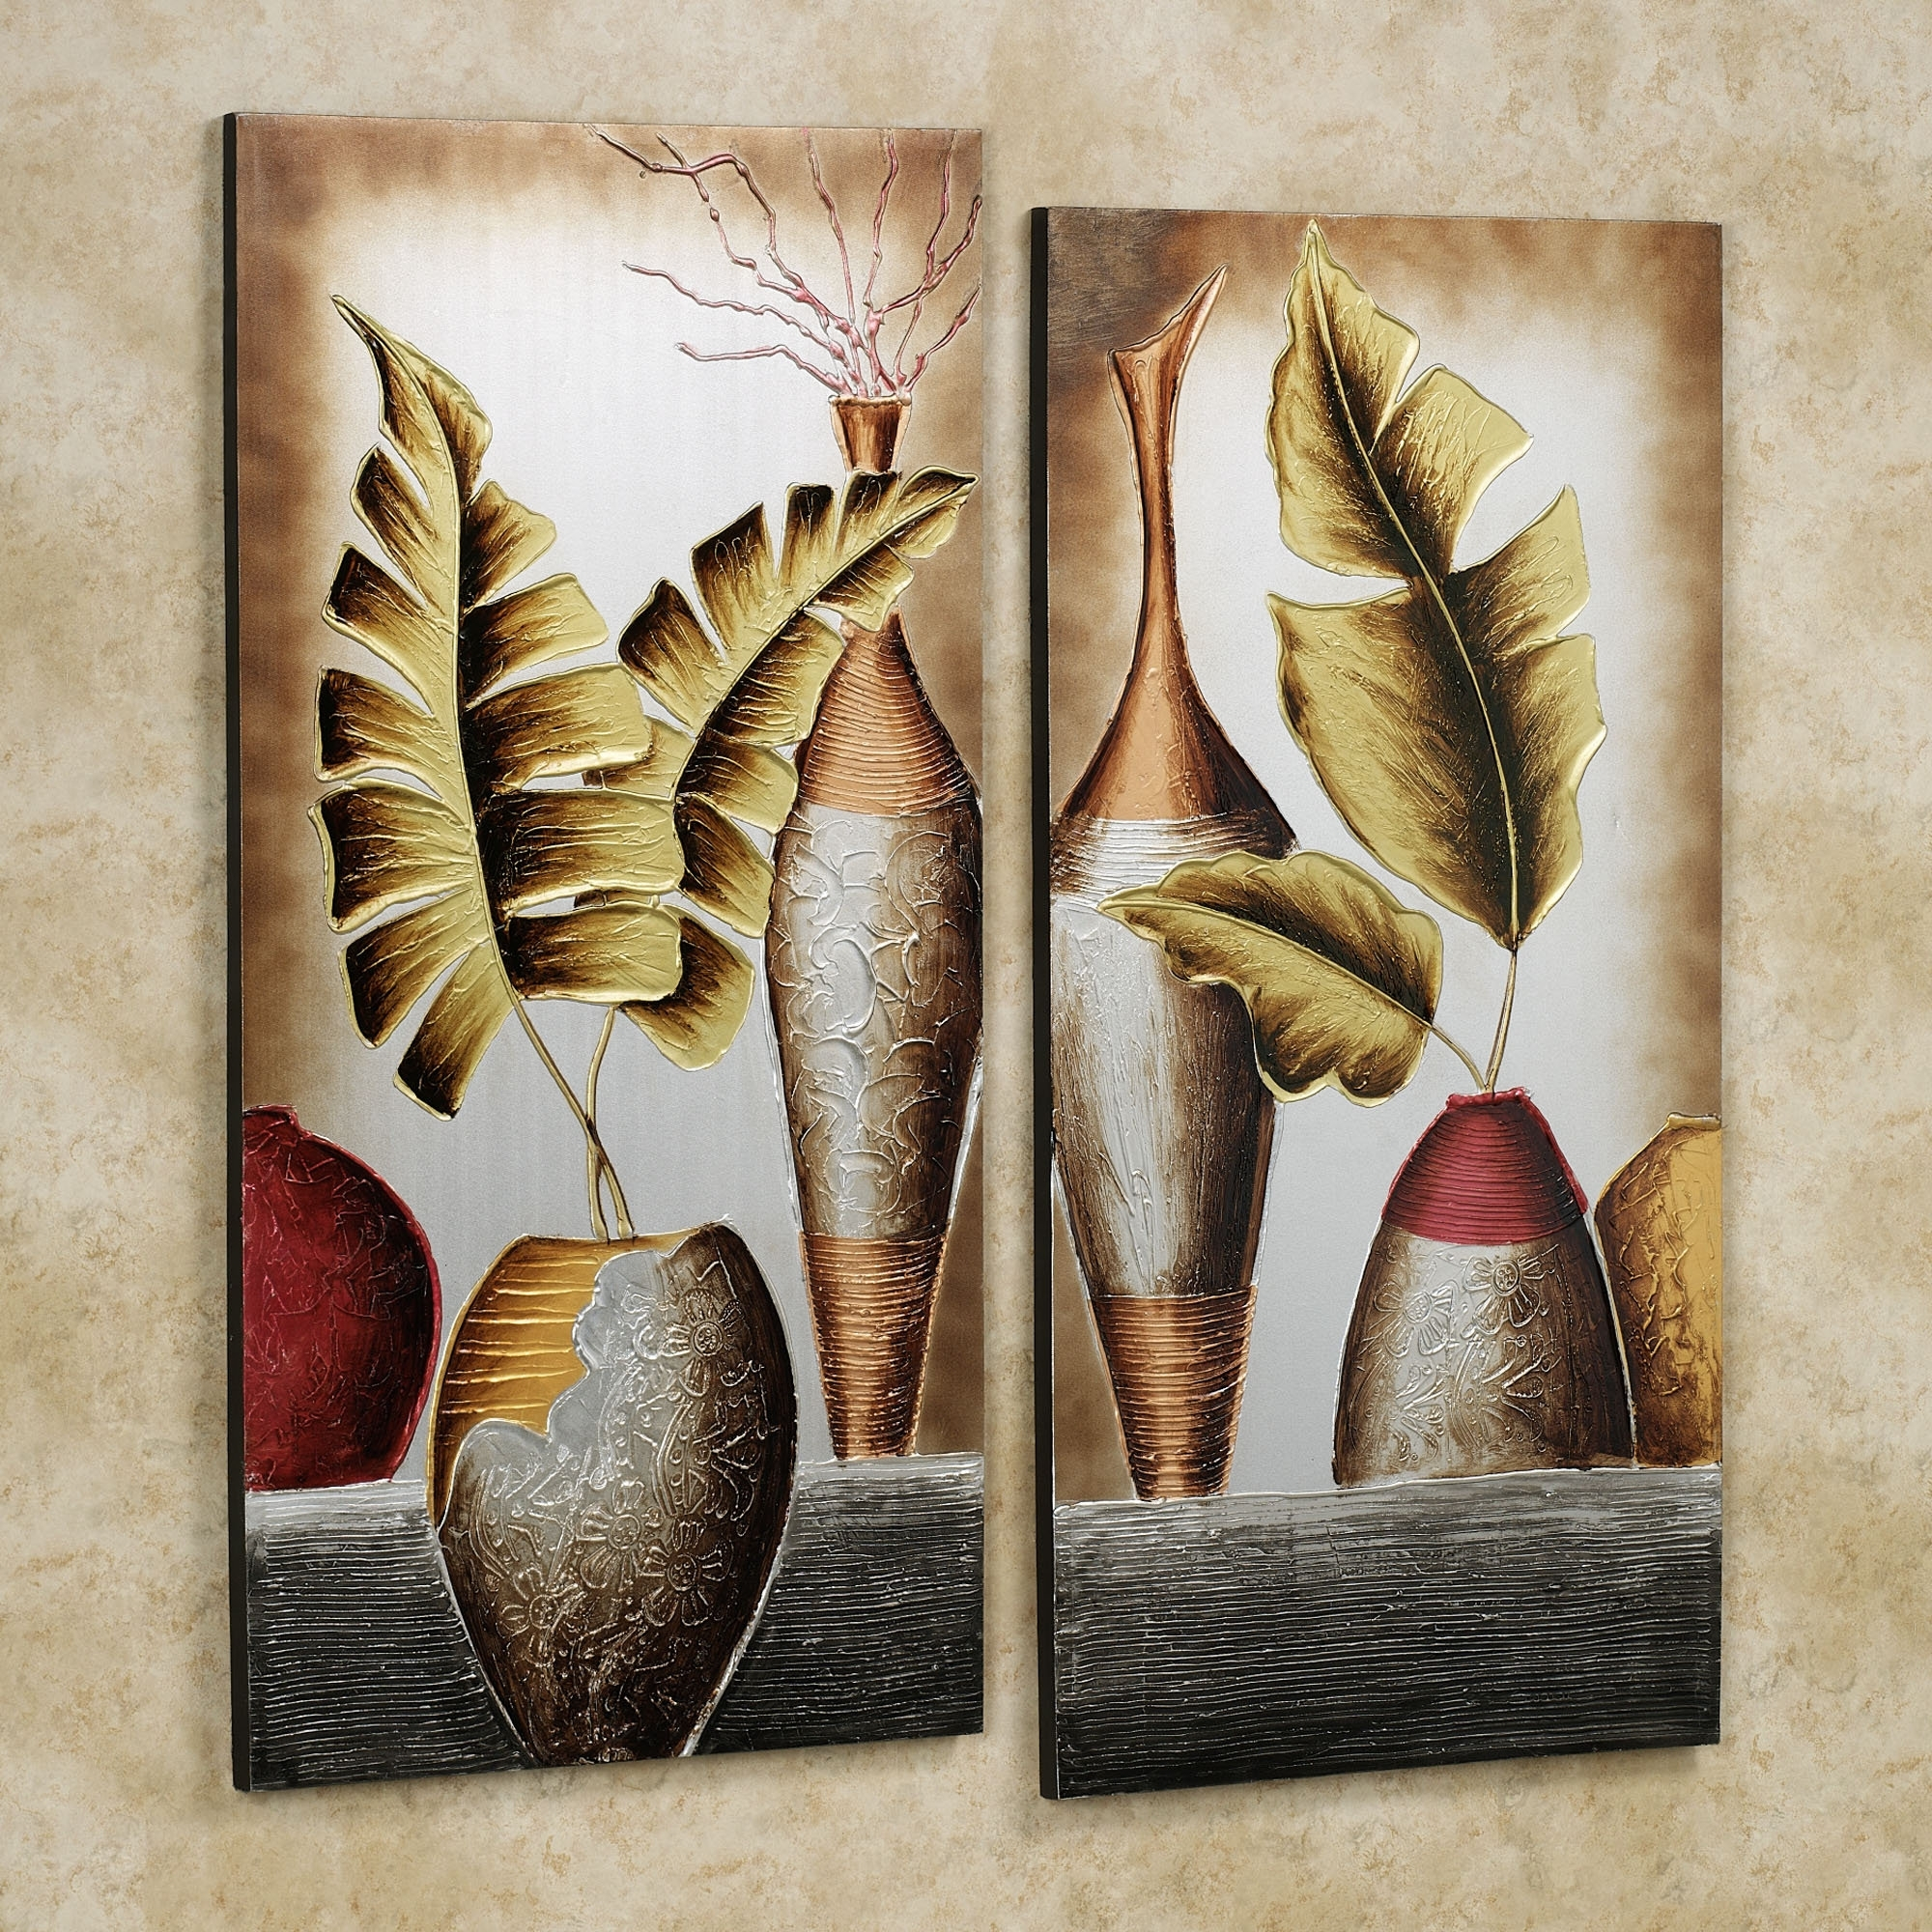 Wall Art Designs: Wall Art Set Canvas Wall Art Set Unique Modern Within Best And Newest Leaves Canvas Wall Art (View 14 of 15)